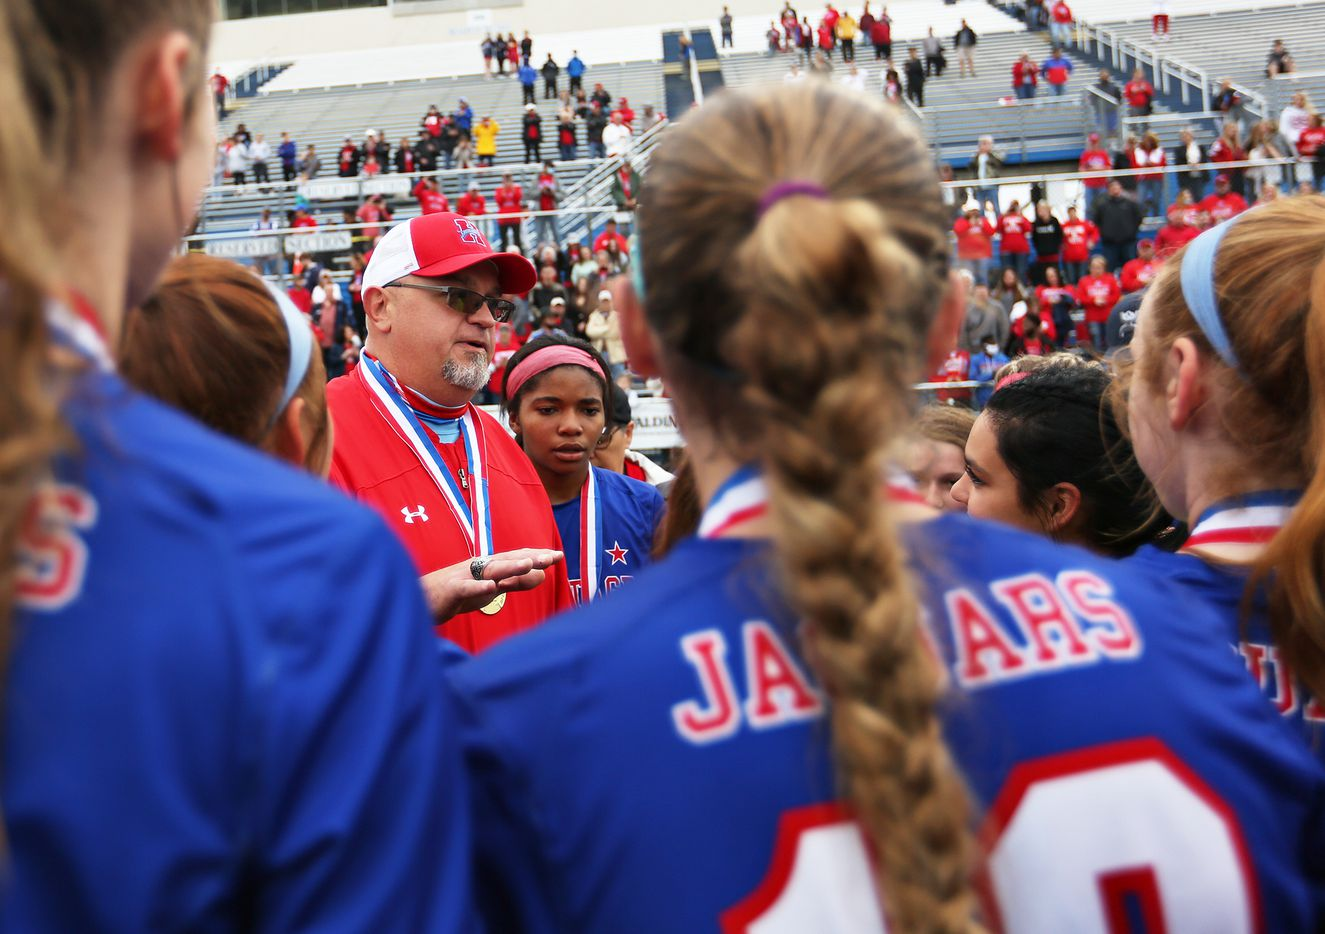 Midlothian Heritage head coach Gerald Slovacek chats with his players at their win over Calallen at their UIL 4A girls State championship soccer game at Birkelbach Field on April 16, 2021 in Georgetown, Texas.  (Thao Nguyen/Special Contributor)